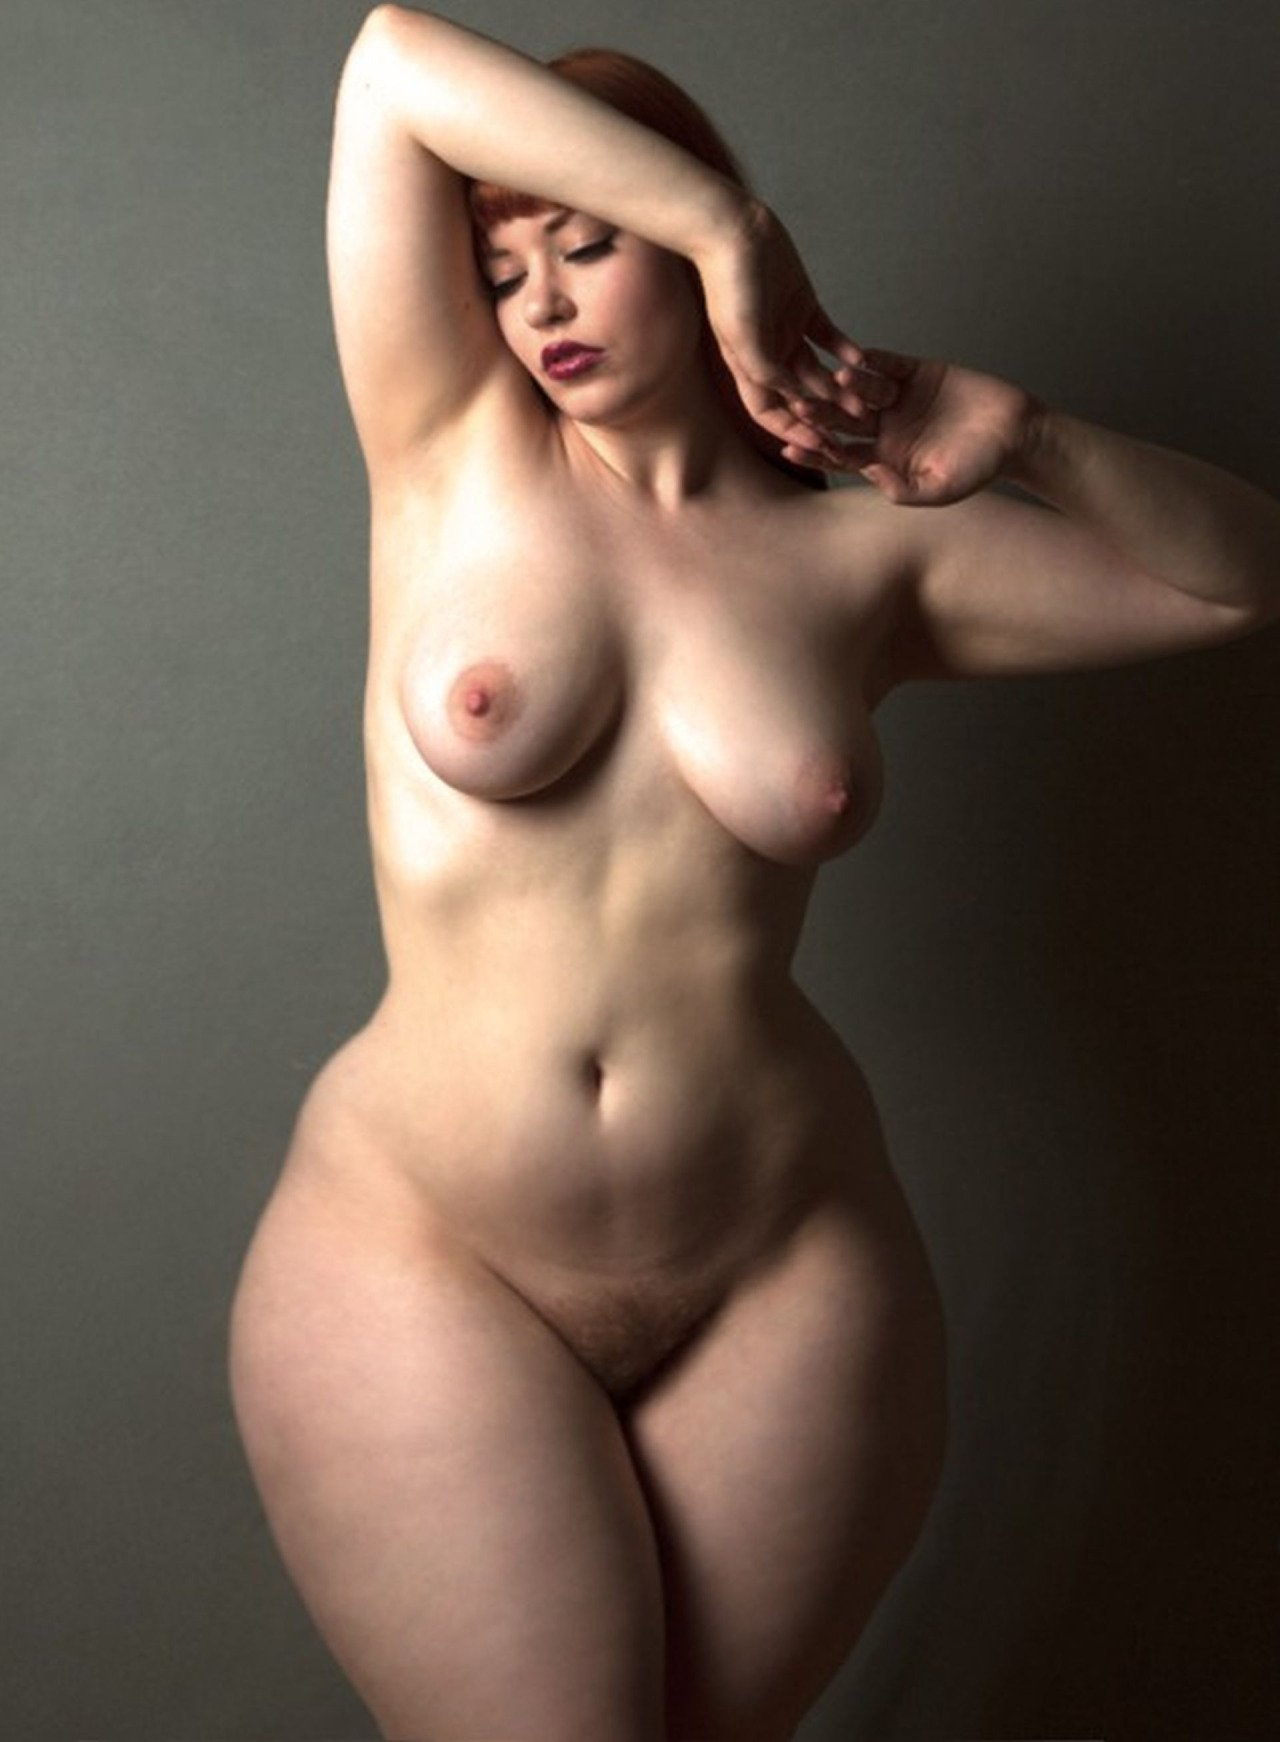 Big Beautiful Woman With Naked Boobs And Red Hair